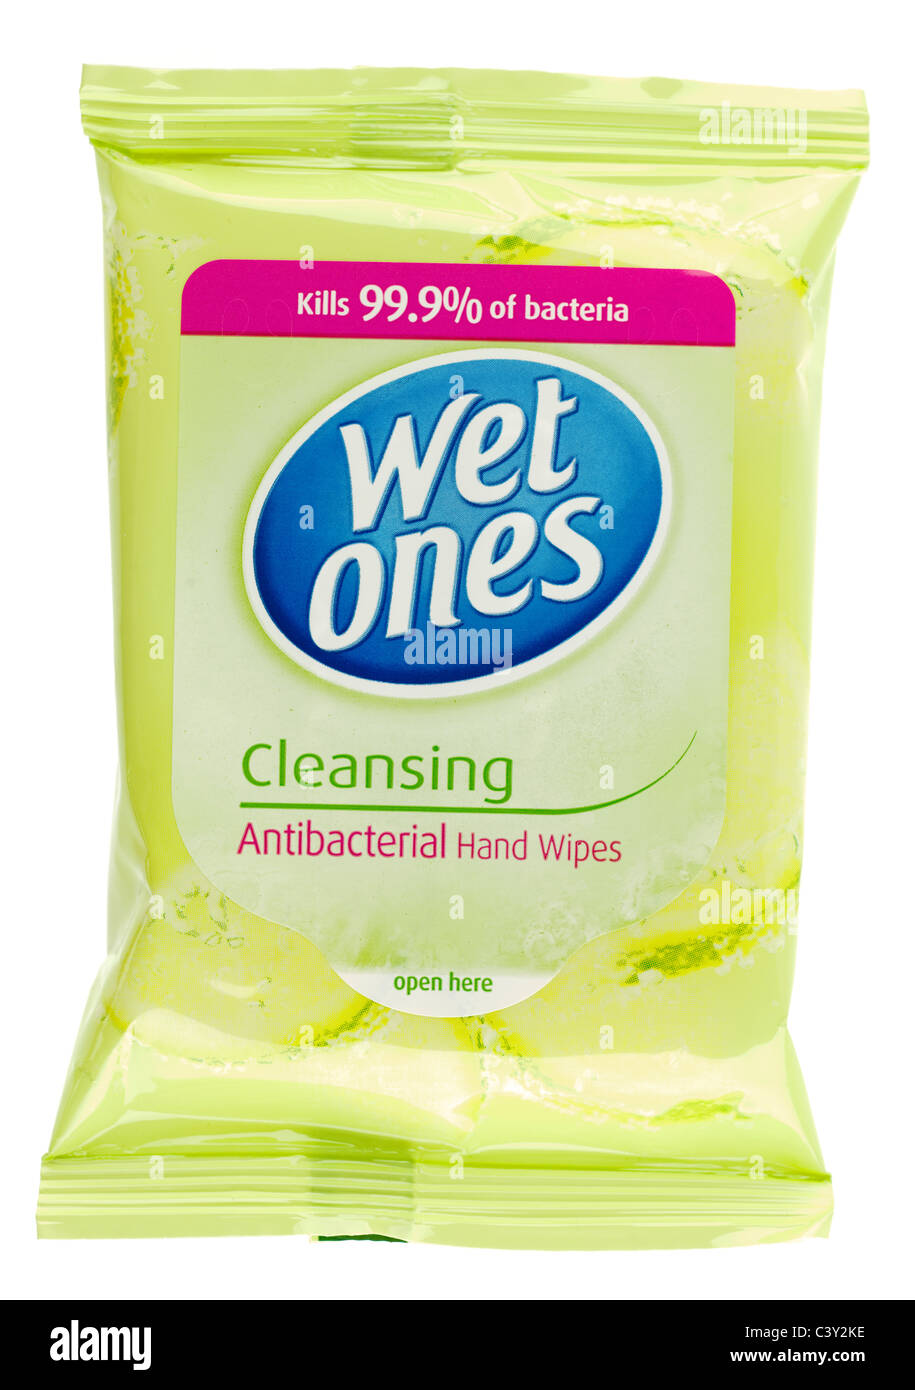 Packet of Wet Ones cleansing antibacterial hand wipes - Stock Image